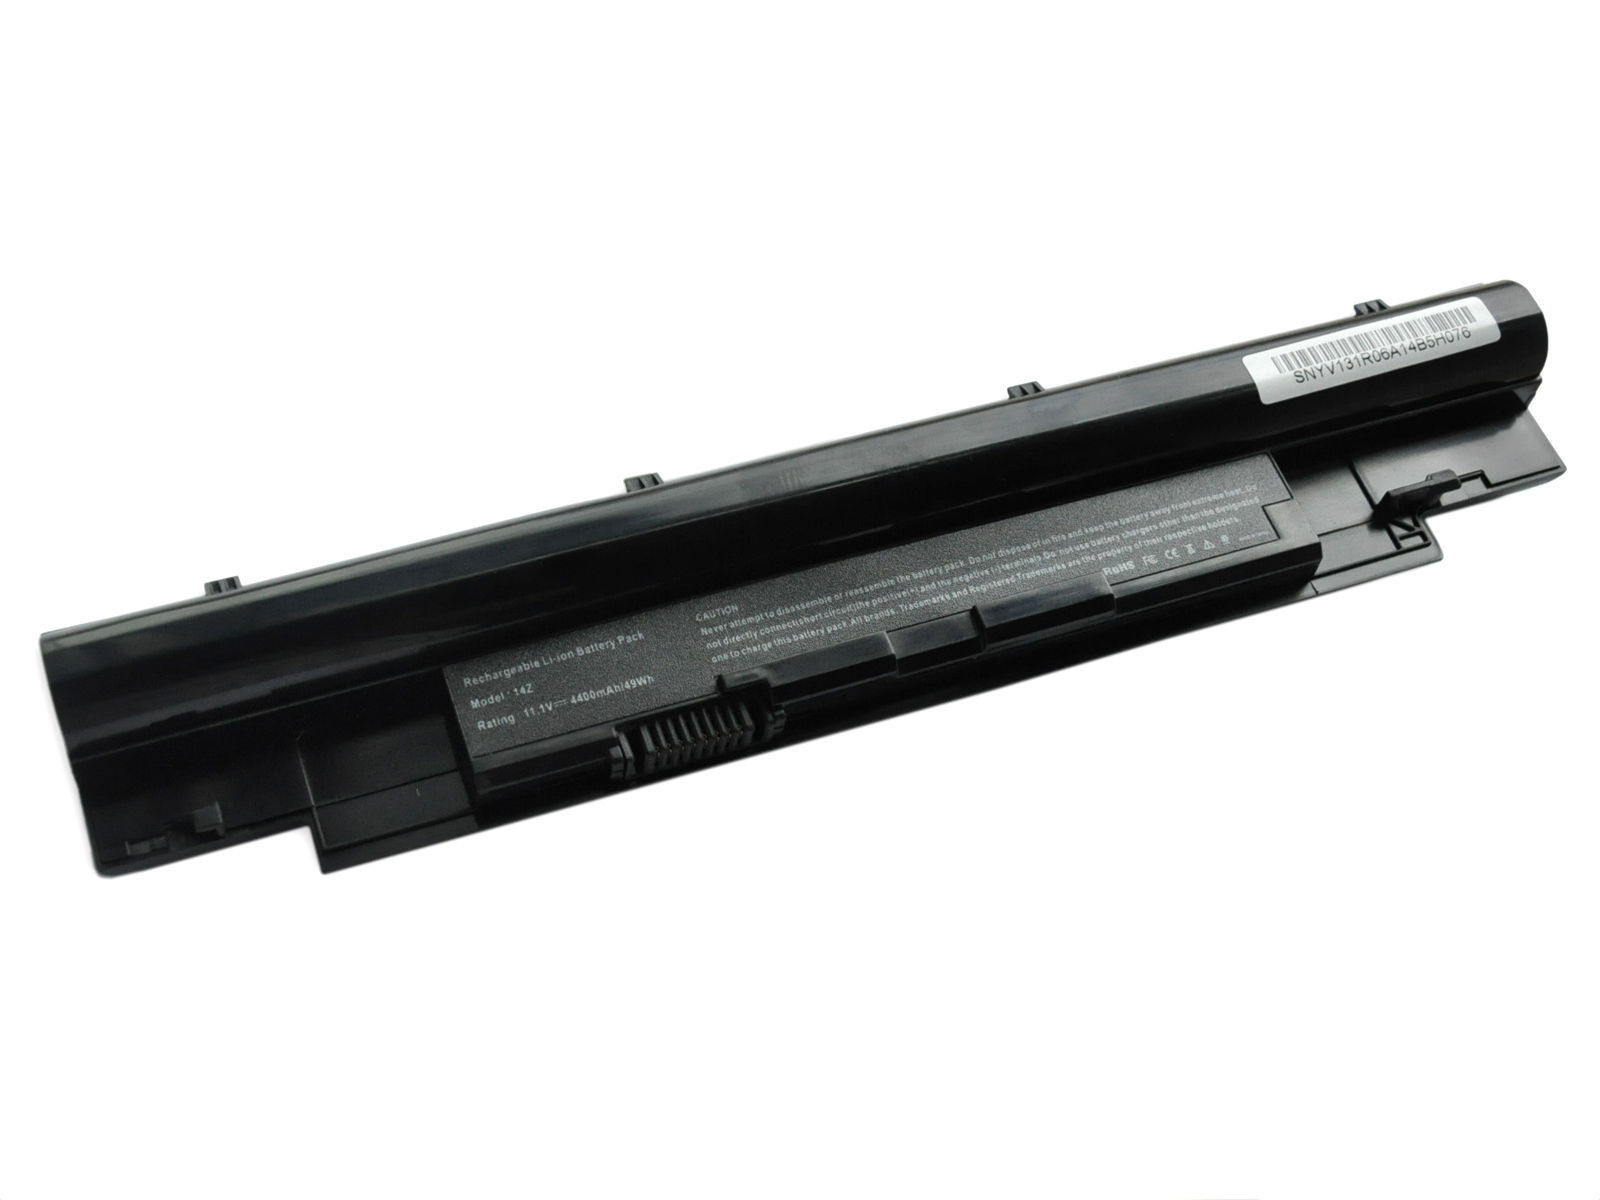 Replacement Dell 268X5 Battery